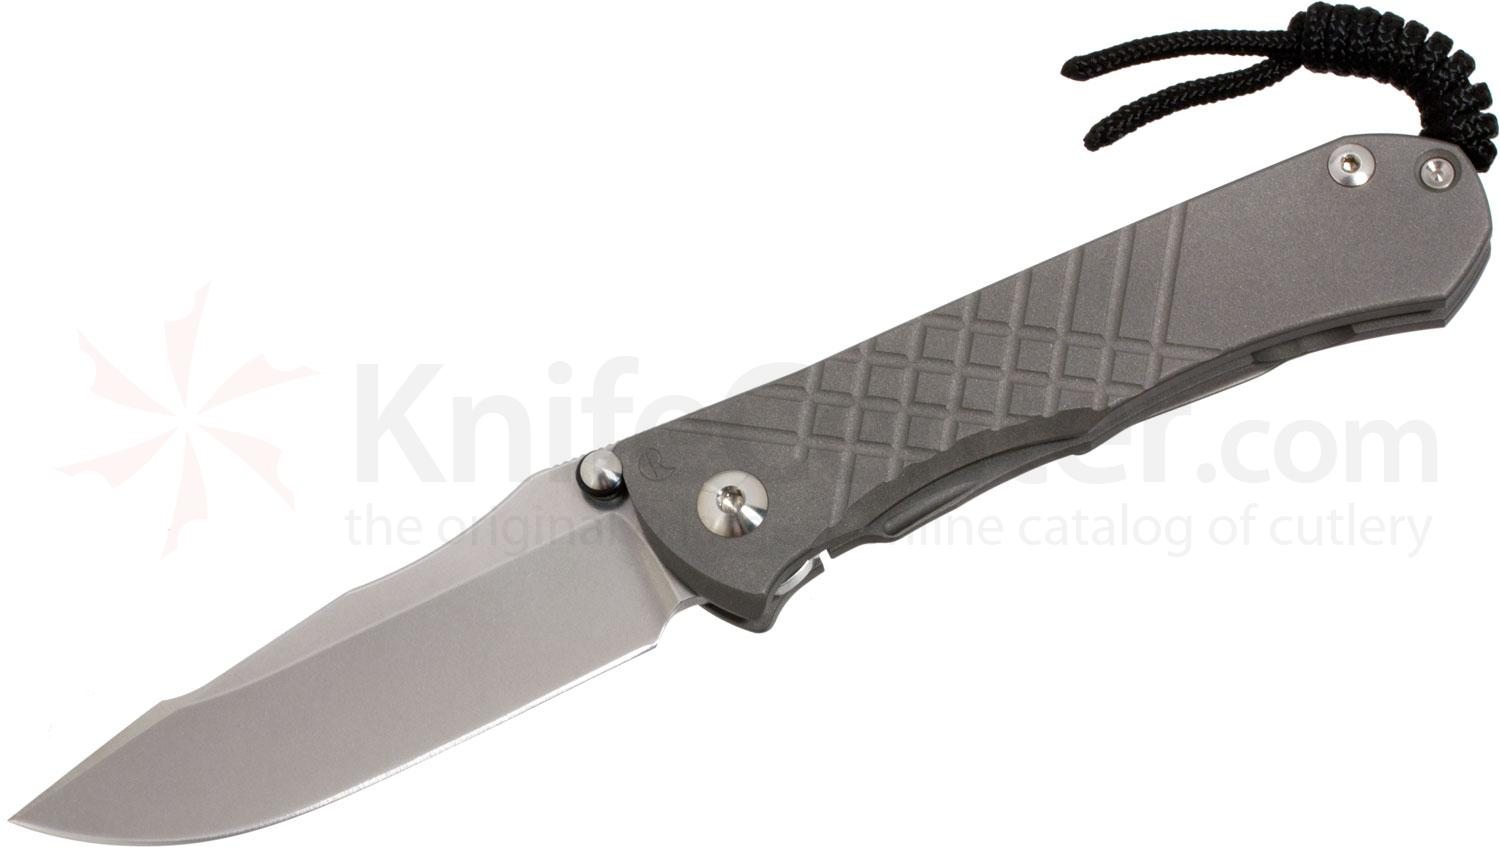 Chris Reeve Umnumzaan Folding Knife 3.675 inch S35VN Stonewashed Blade, Milled Titanium Handles